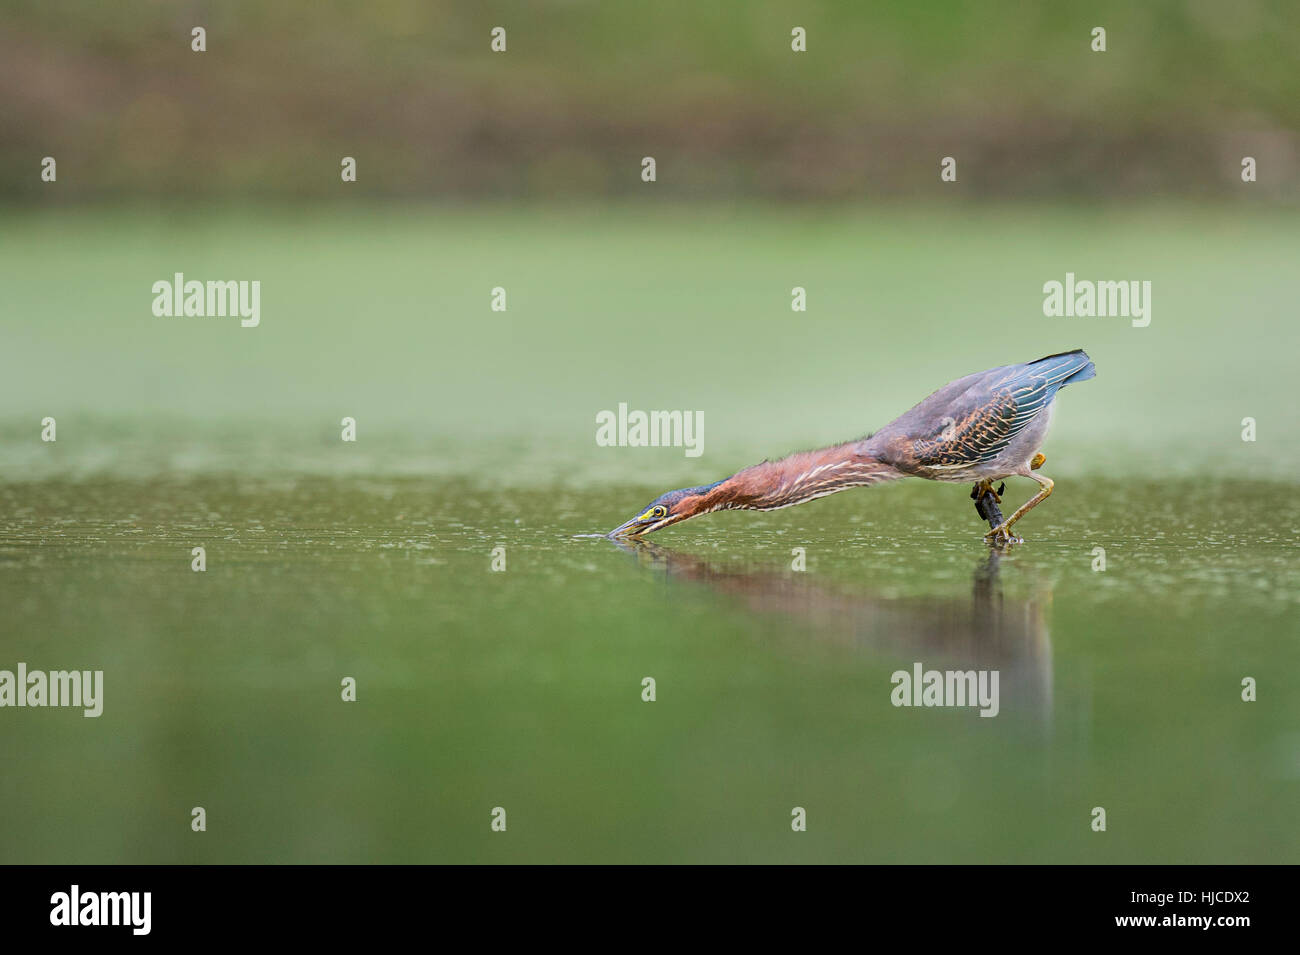 A Green Heron strikes out at prey in a small pond with the surface of the water reflecting green. - Stock Image